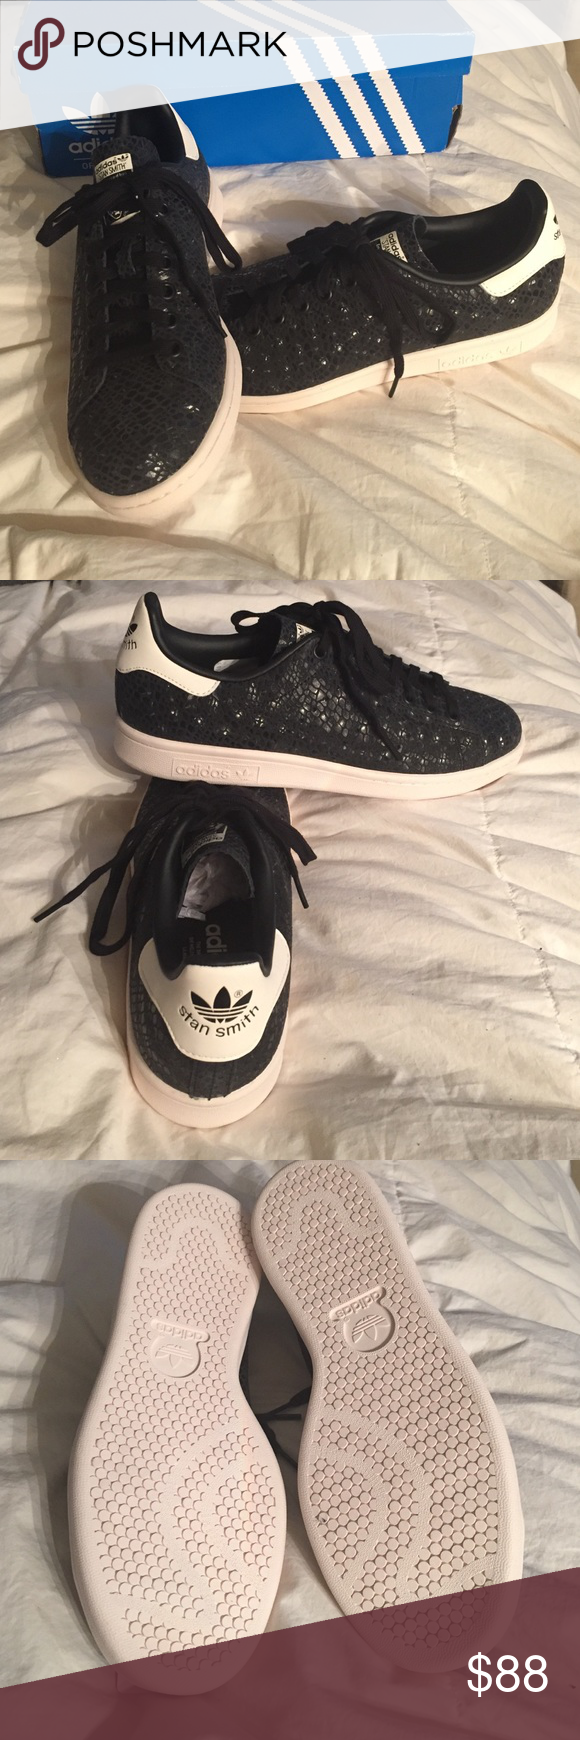 new adidas womens running shoes adidas originals womens stan smith snakeskin black copper